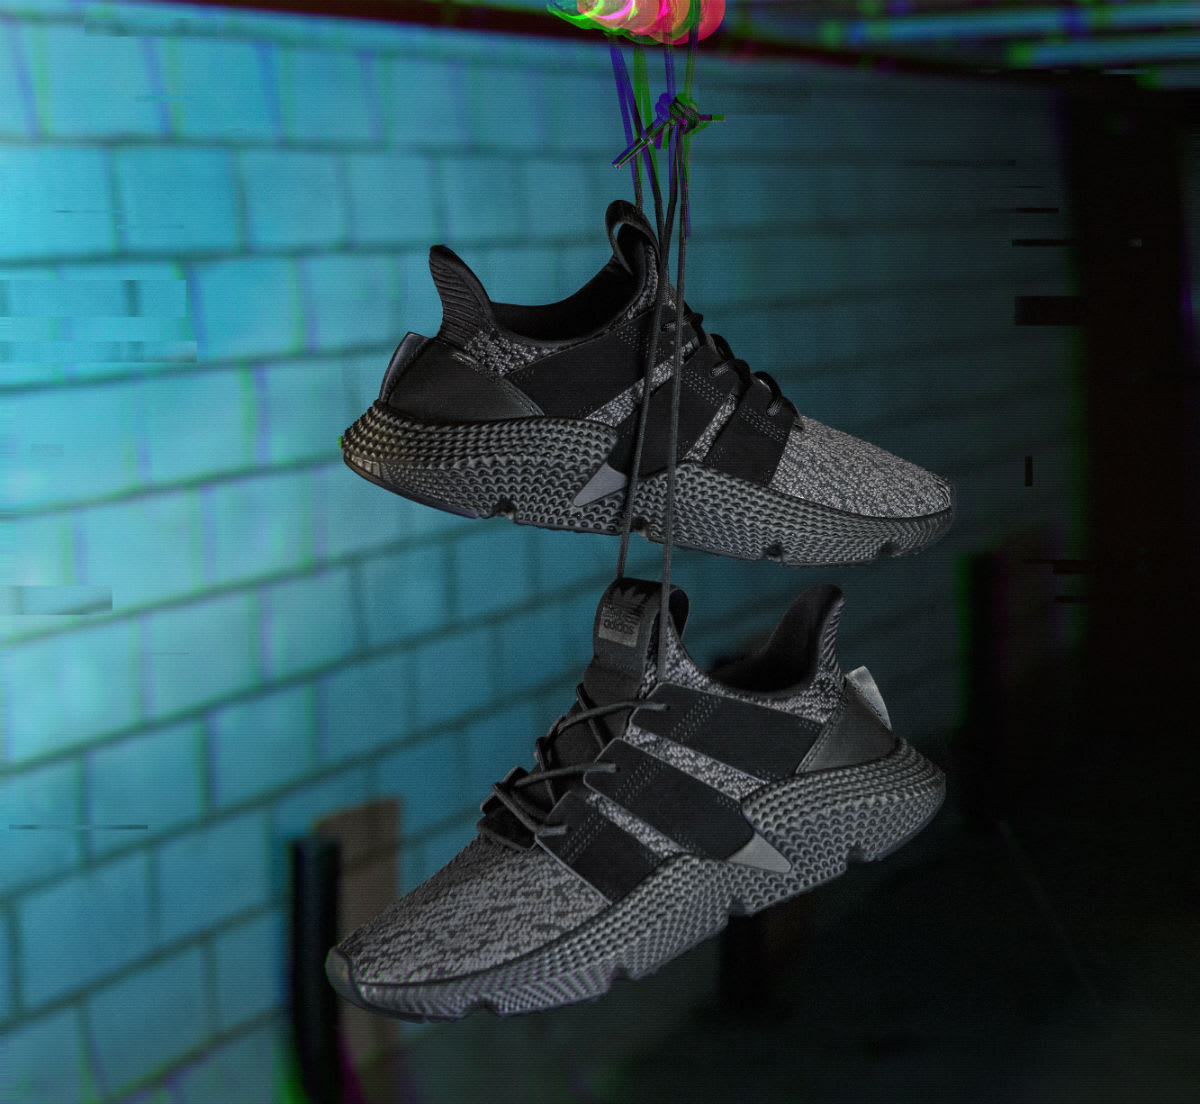 Adidas Prophere Black Release Date CQ2126